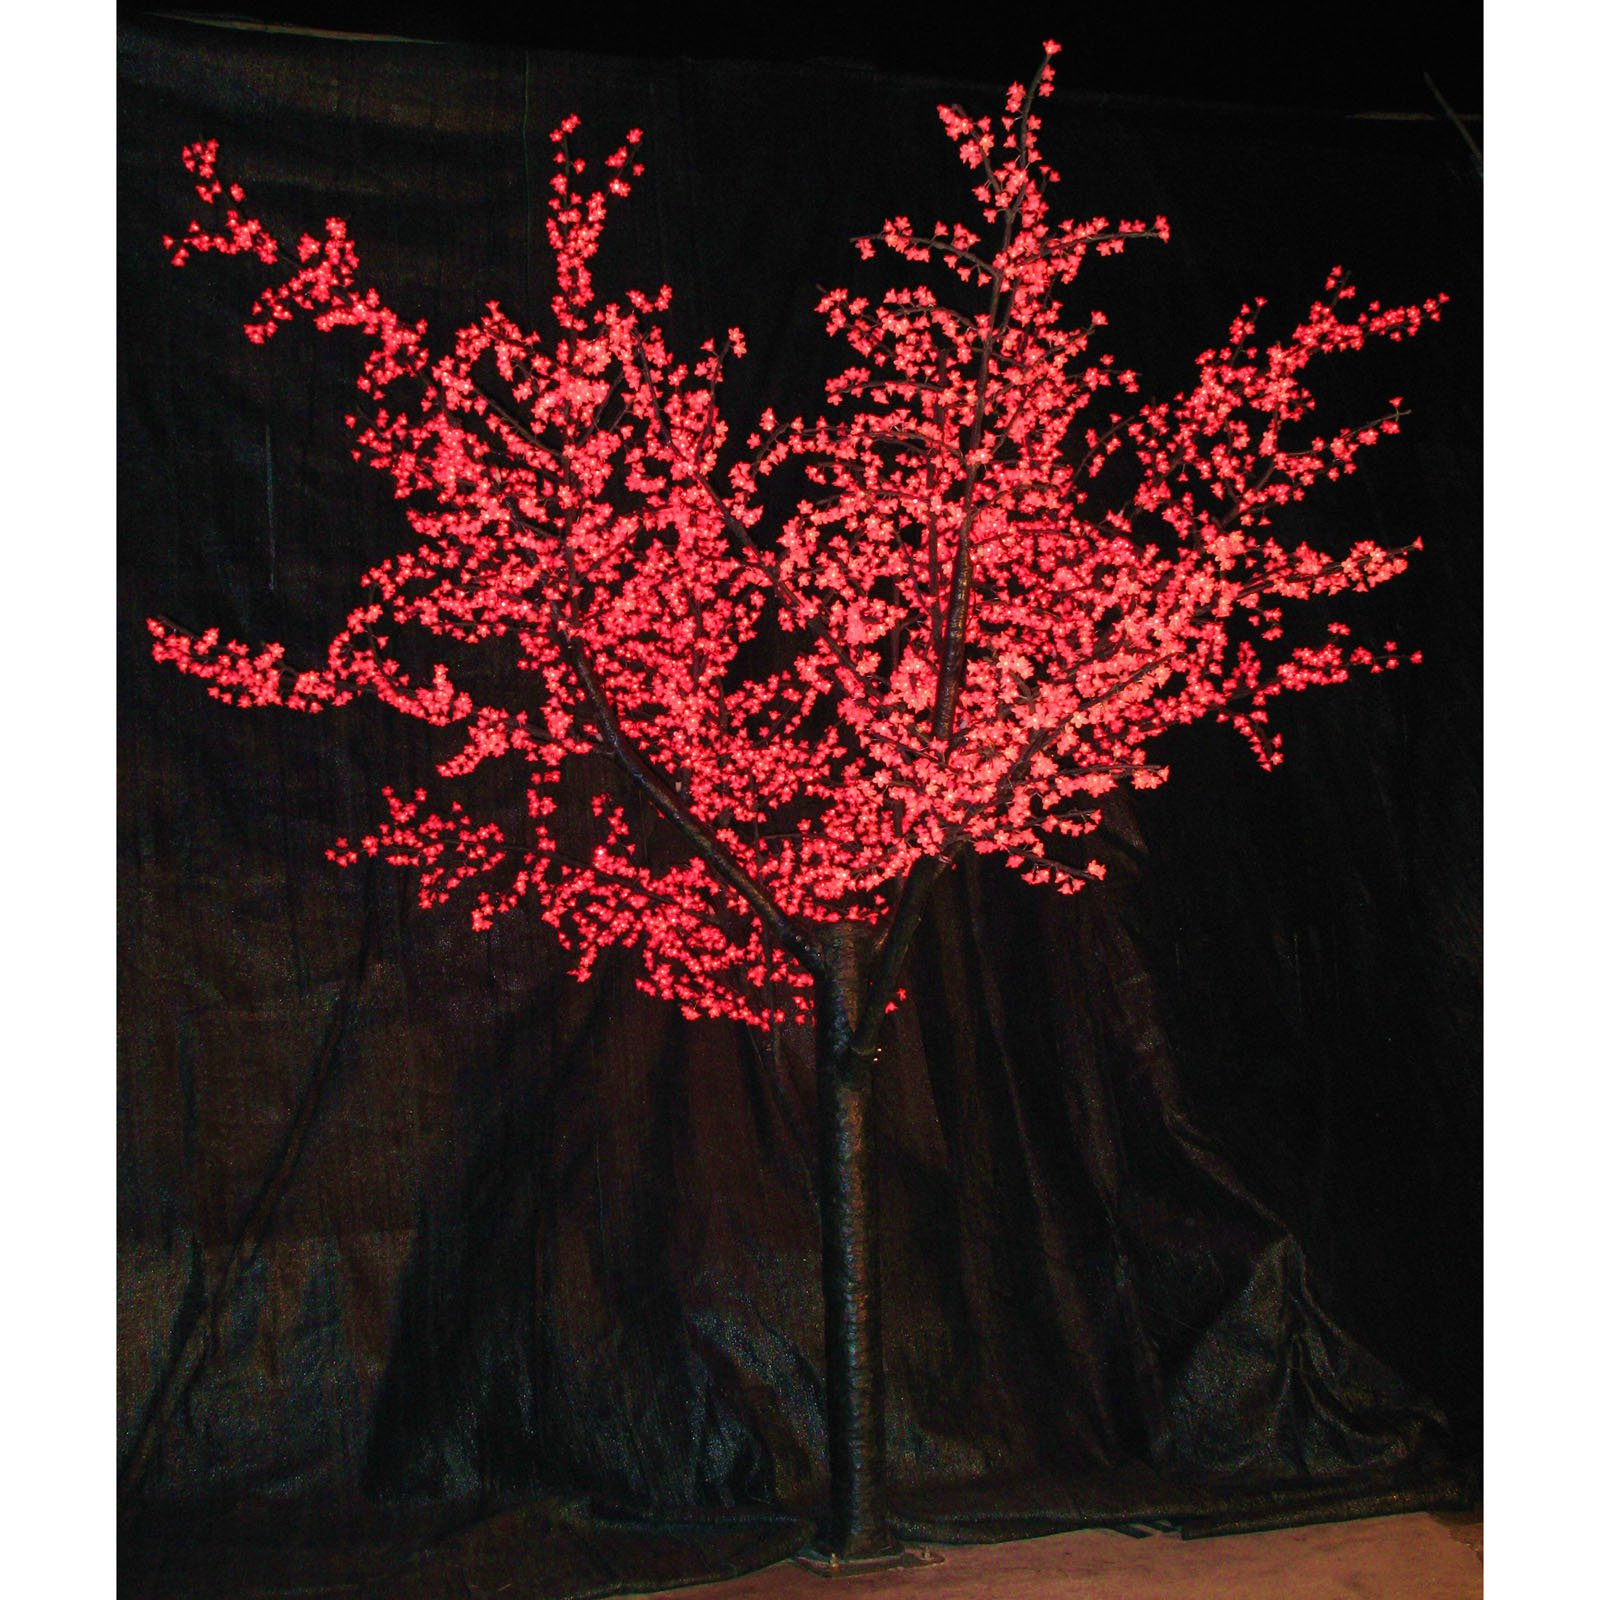 12 ft. Pre-lit LED Cherry Blossom Tree - Red